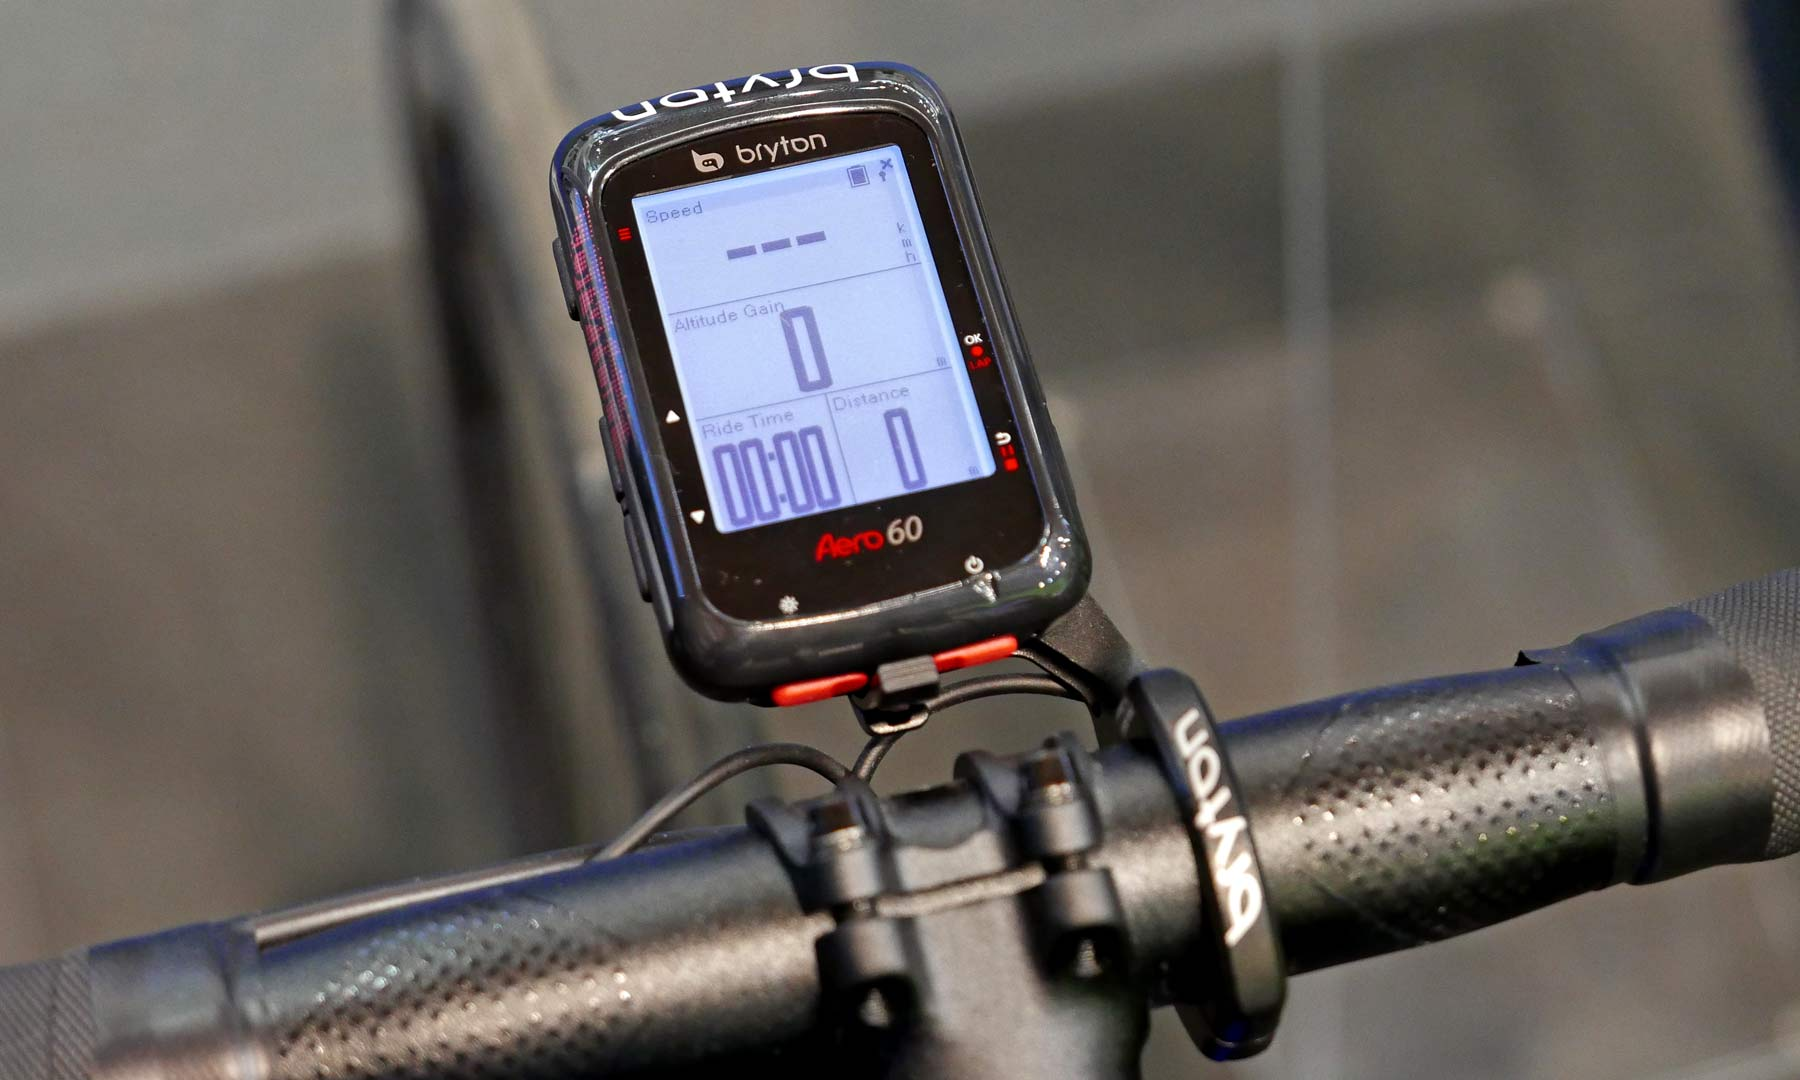 Bryton Aero 60 affordable aero optimized fully connected GPS cycling computer on bike